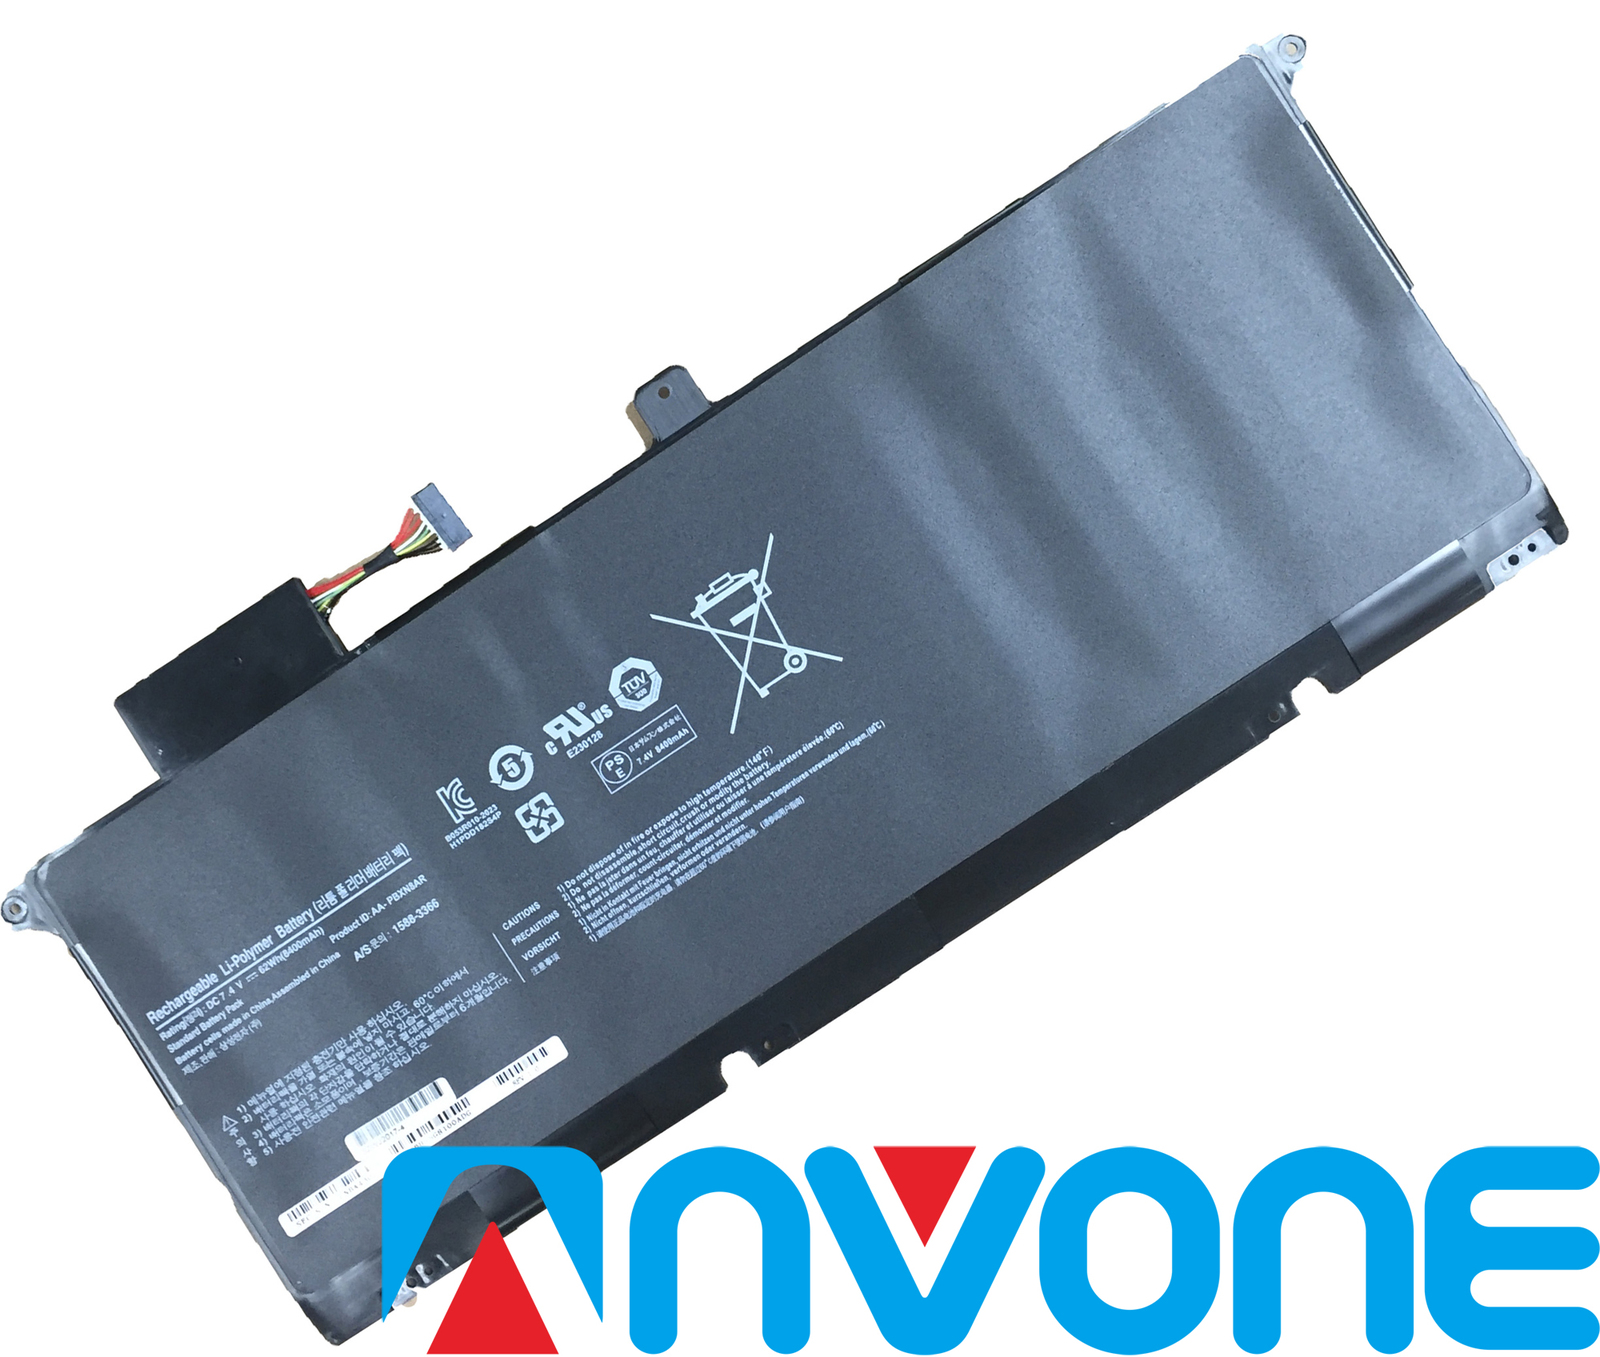 Primary image for 62Wh 7.4V AA-PBXN8AR Battery For Samsung 900X4B 900X4C-A01 NP900X4D Series 9